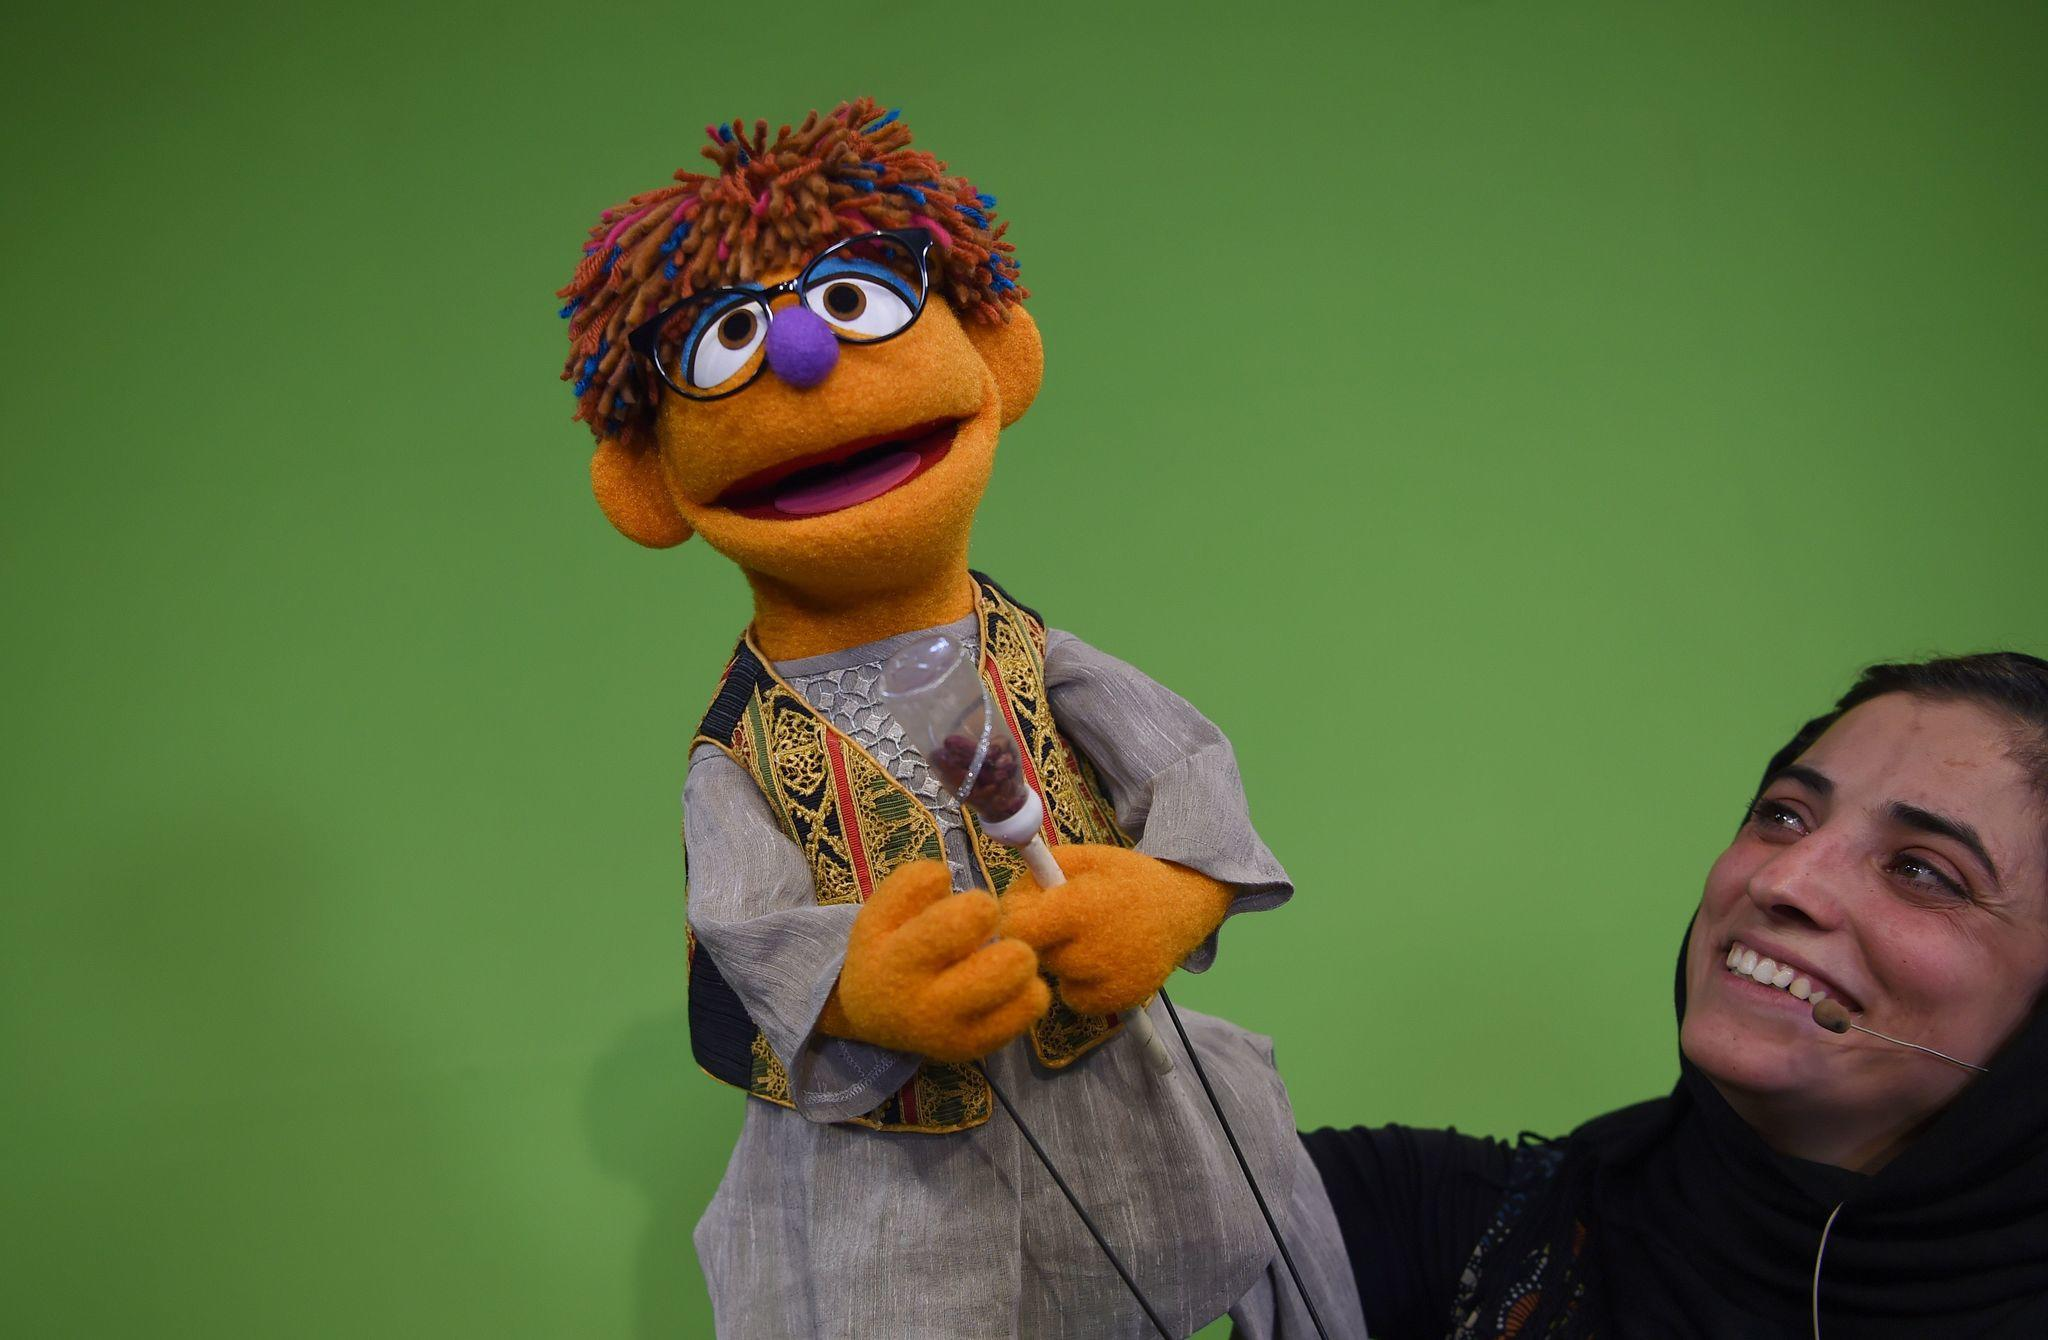 """Puppeteer Seema Sultani holds Zeerak, the new muppet on Afghanistan's """"Sesame Street"""" meant to promote education and gender equality. (Wakil Kohsar / AFP/Getty Images)"""